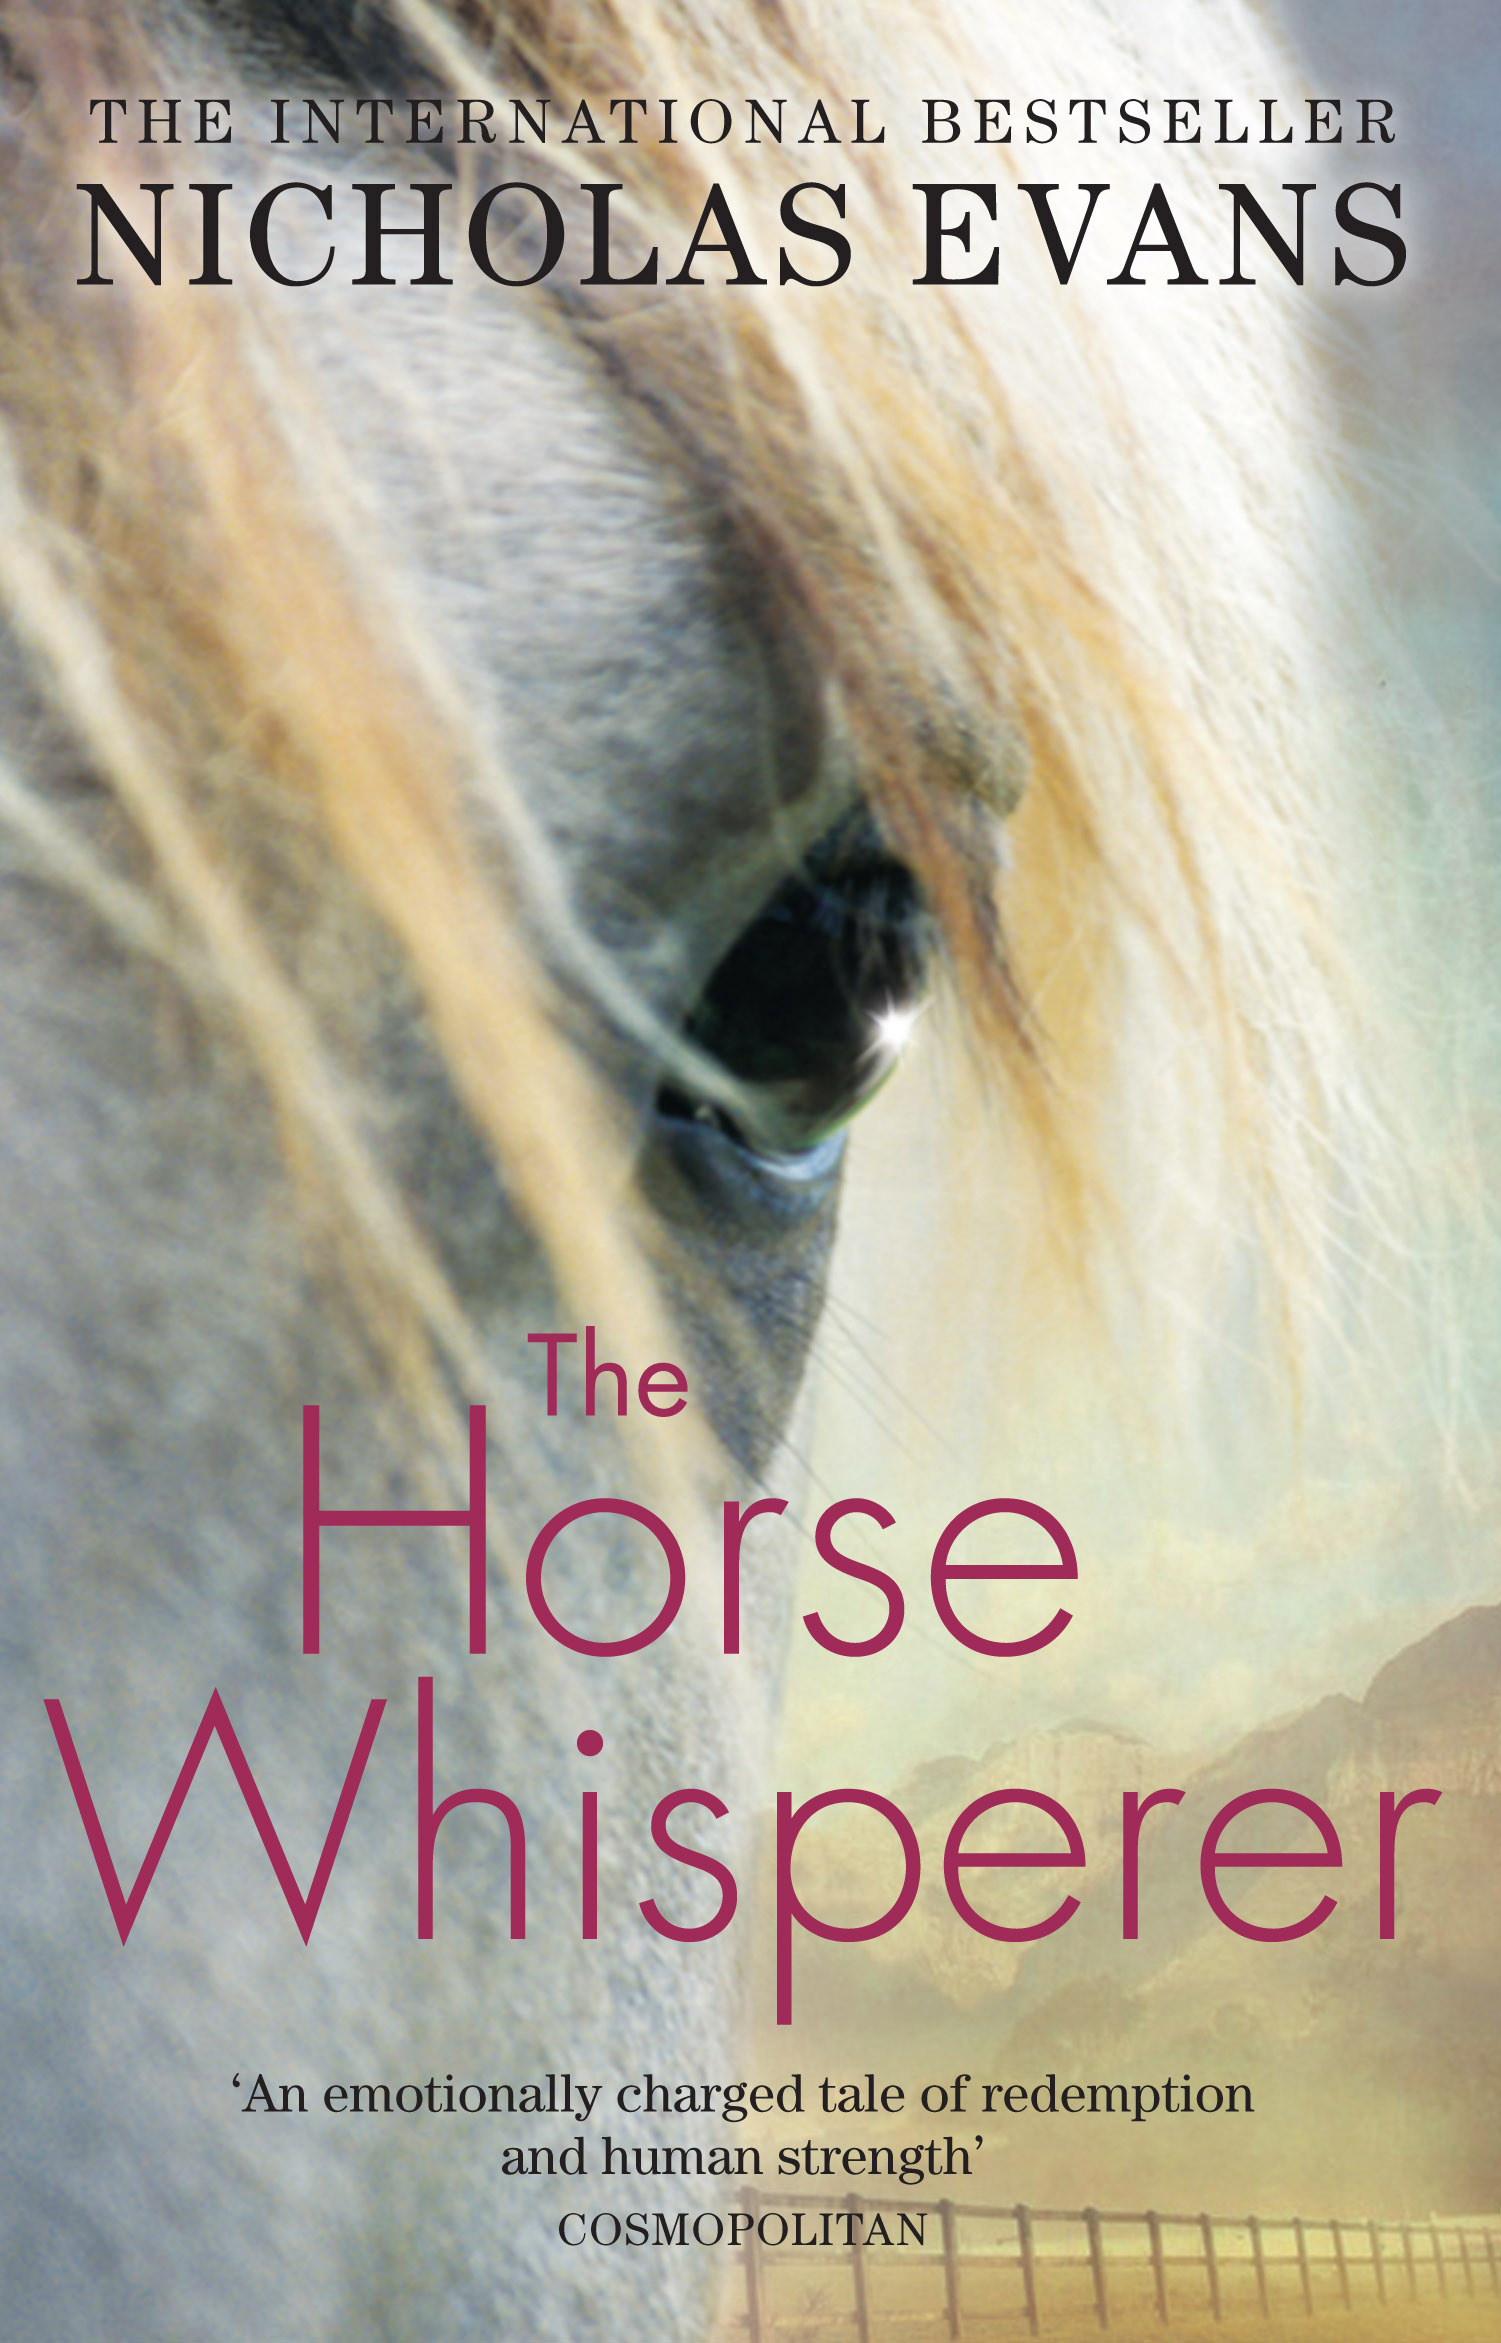 horse whisperer Someone who has sexual relations with a horse and is discreet about it.